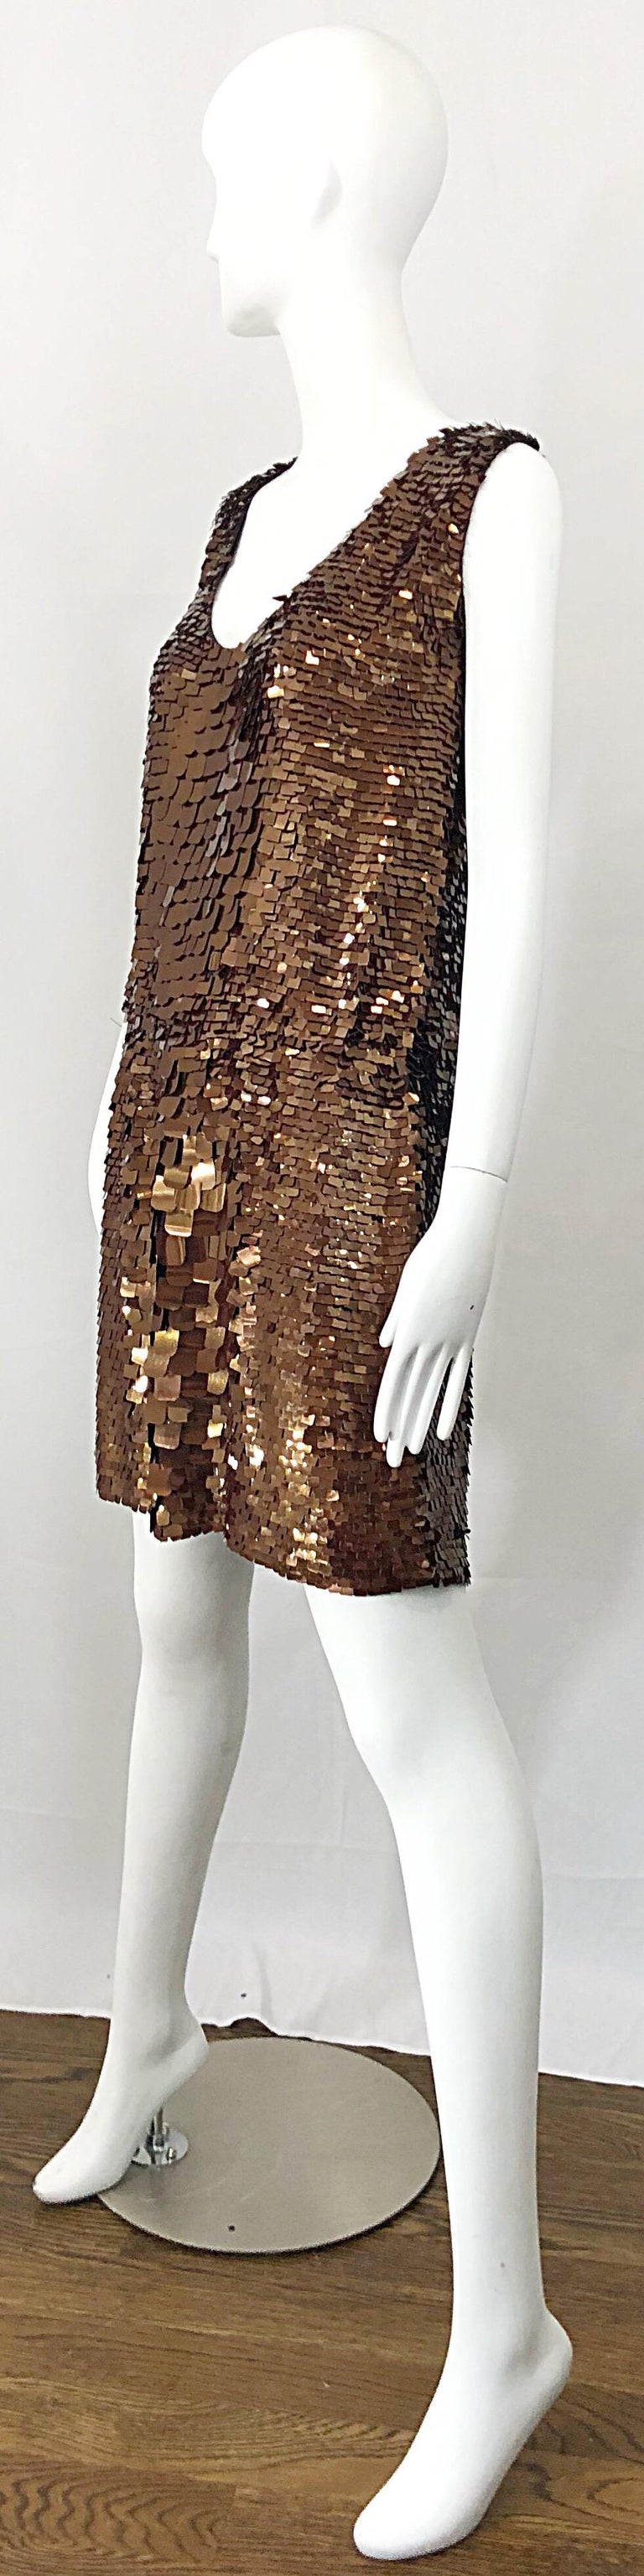 Women's 1990s does 1920s Isaac Mizrahi Chocolate Brown Paillette Sequin Flapper Dress For Sale